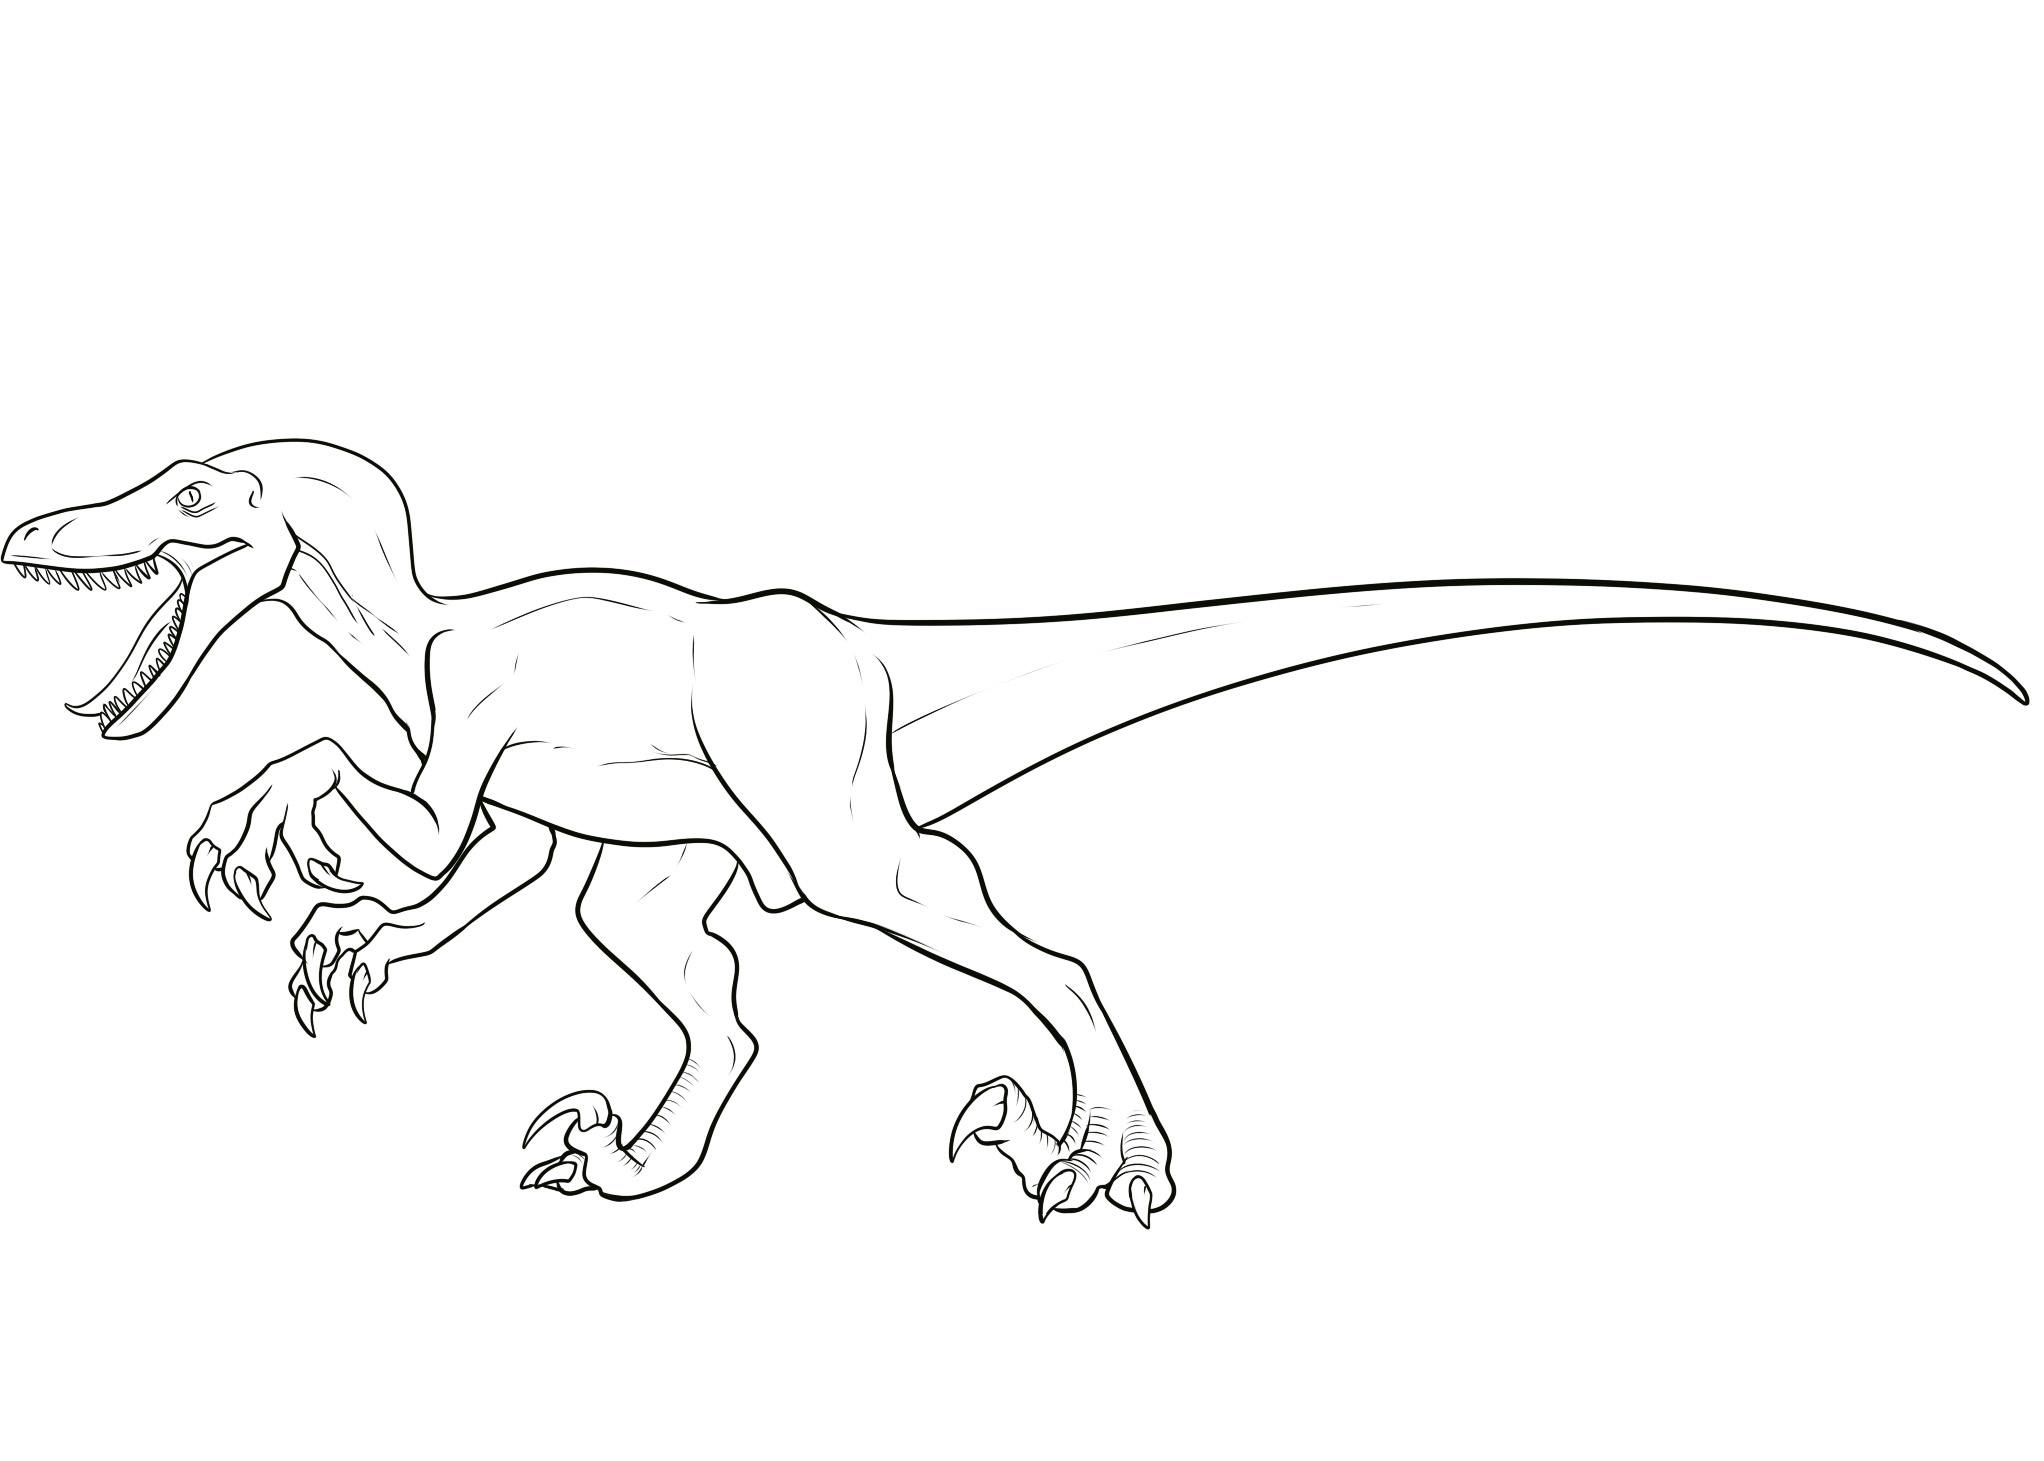 dinosaur raptor coloring pages - photo#13